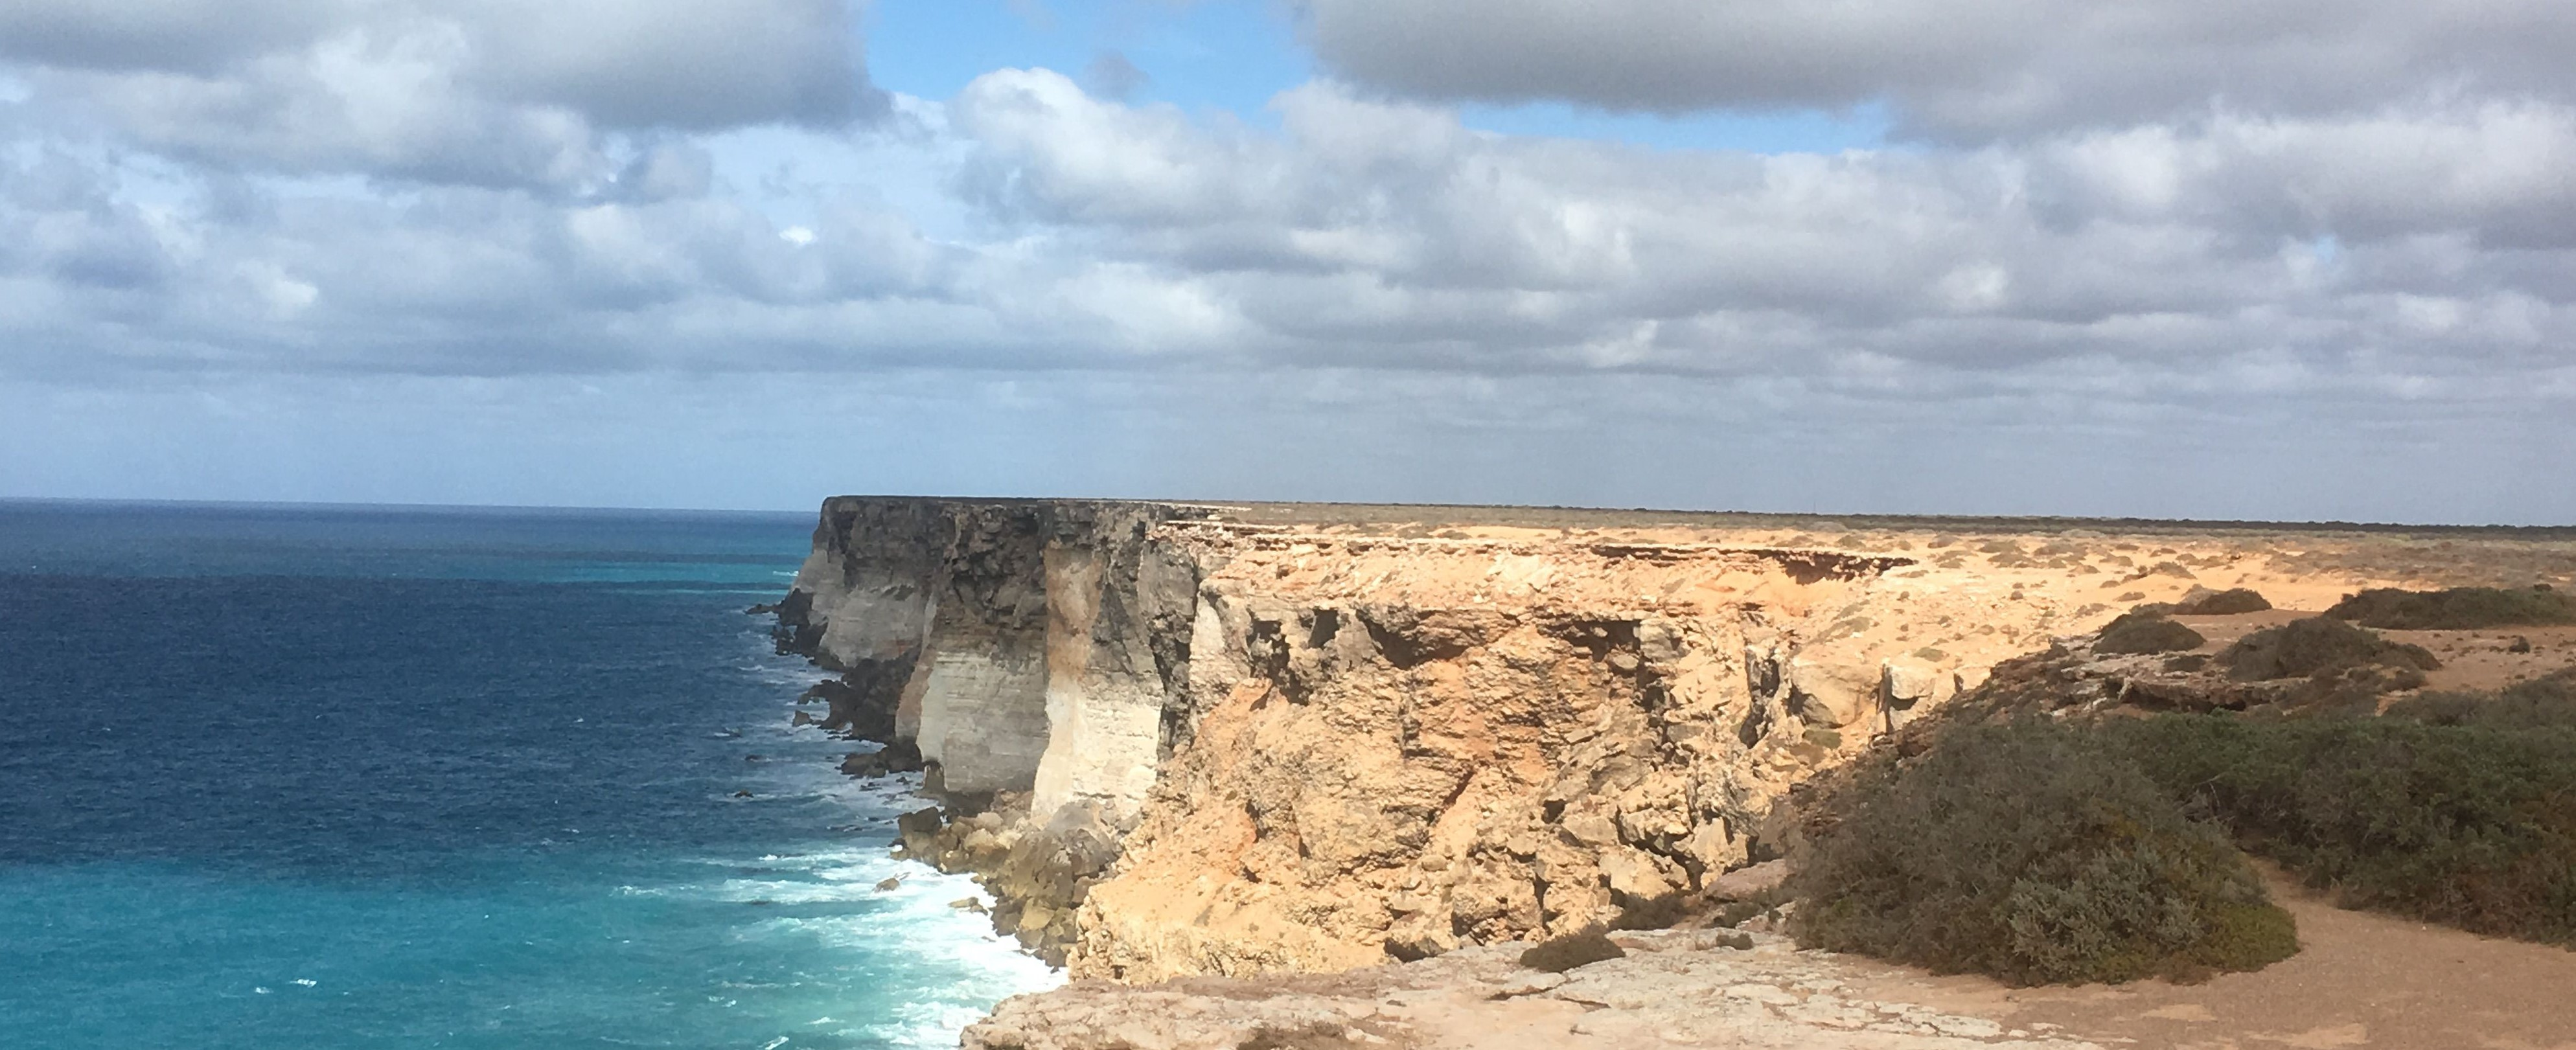 Head of Bight, South Australia